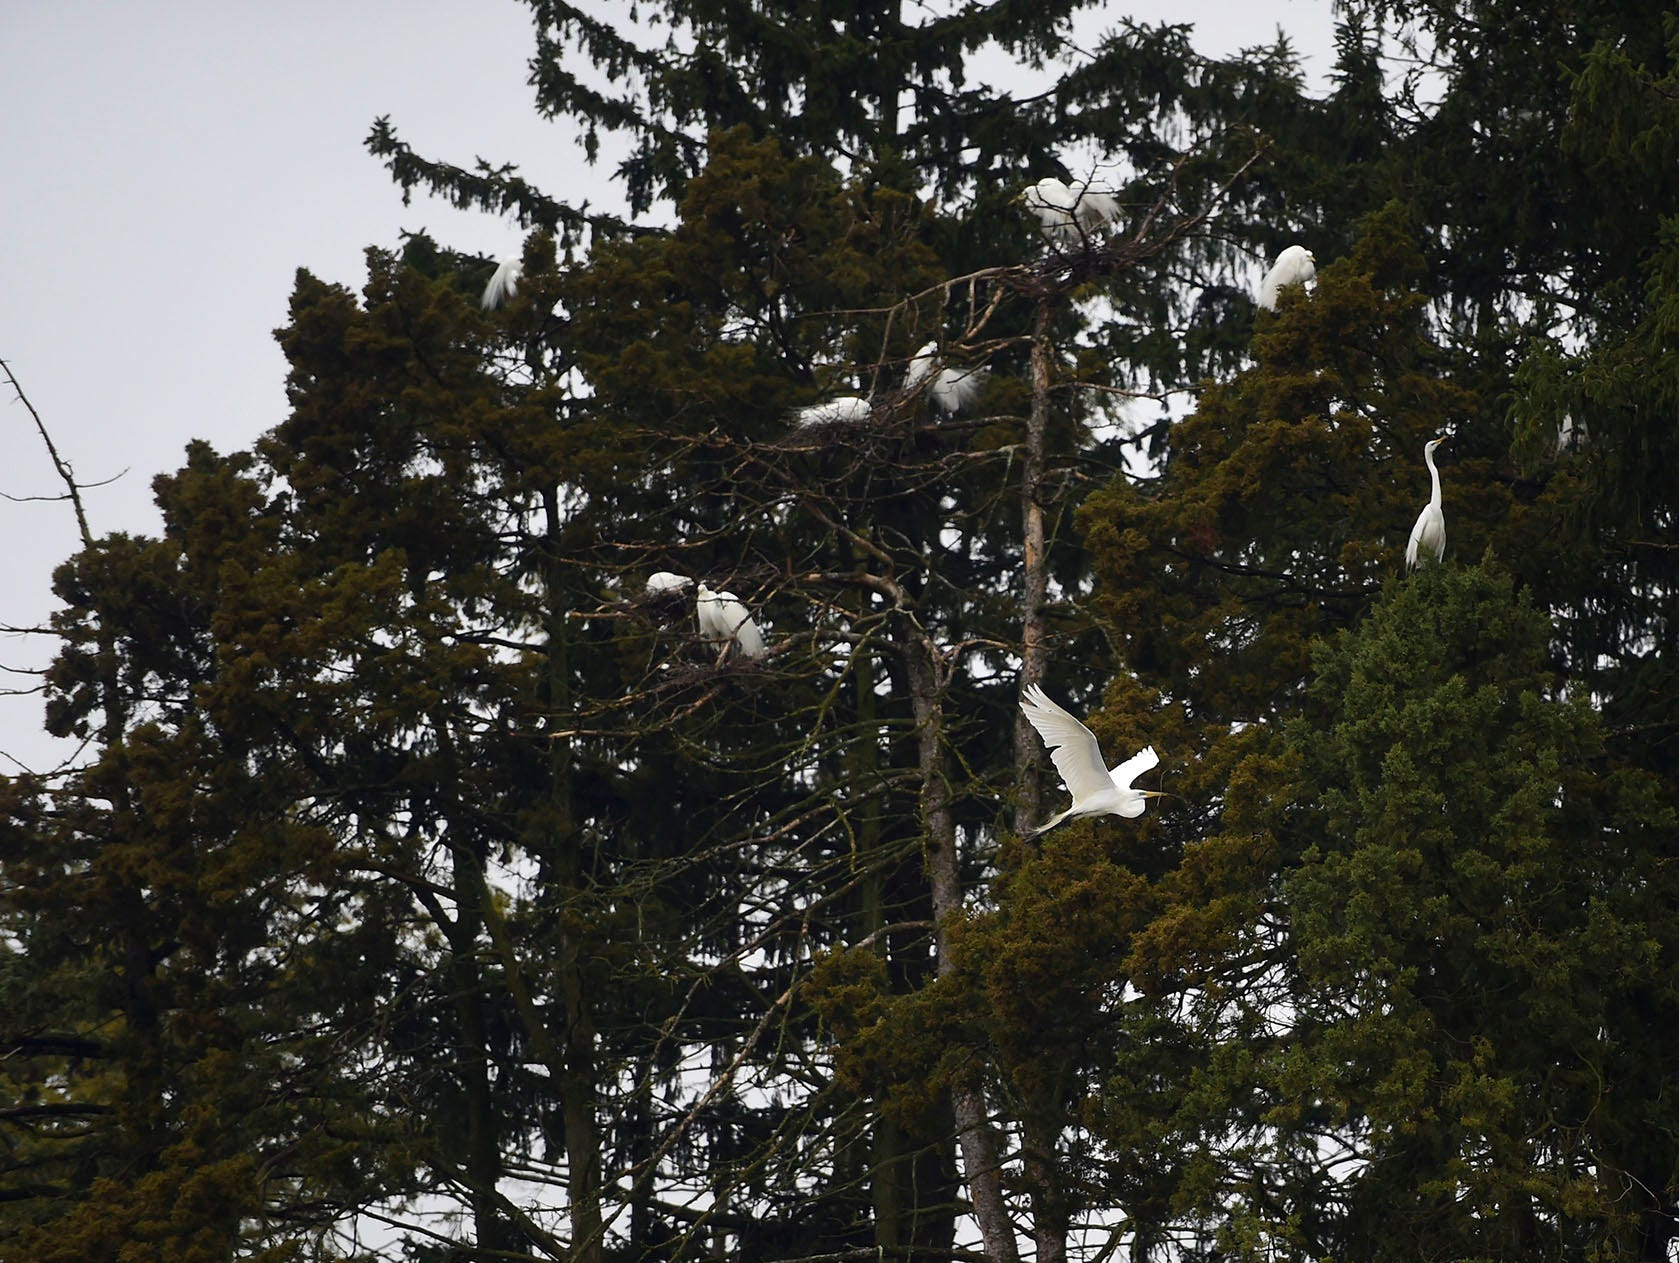 More than seven great egrets gather in the trees surrounding Kiwanis Lake in York. Great egrets will nest at Kiwanis Lake close to yellow-crested night-heron. The Pennsylvania Game Commission has said its the only place in the state where the two species will nest so close together.